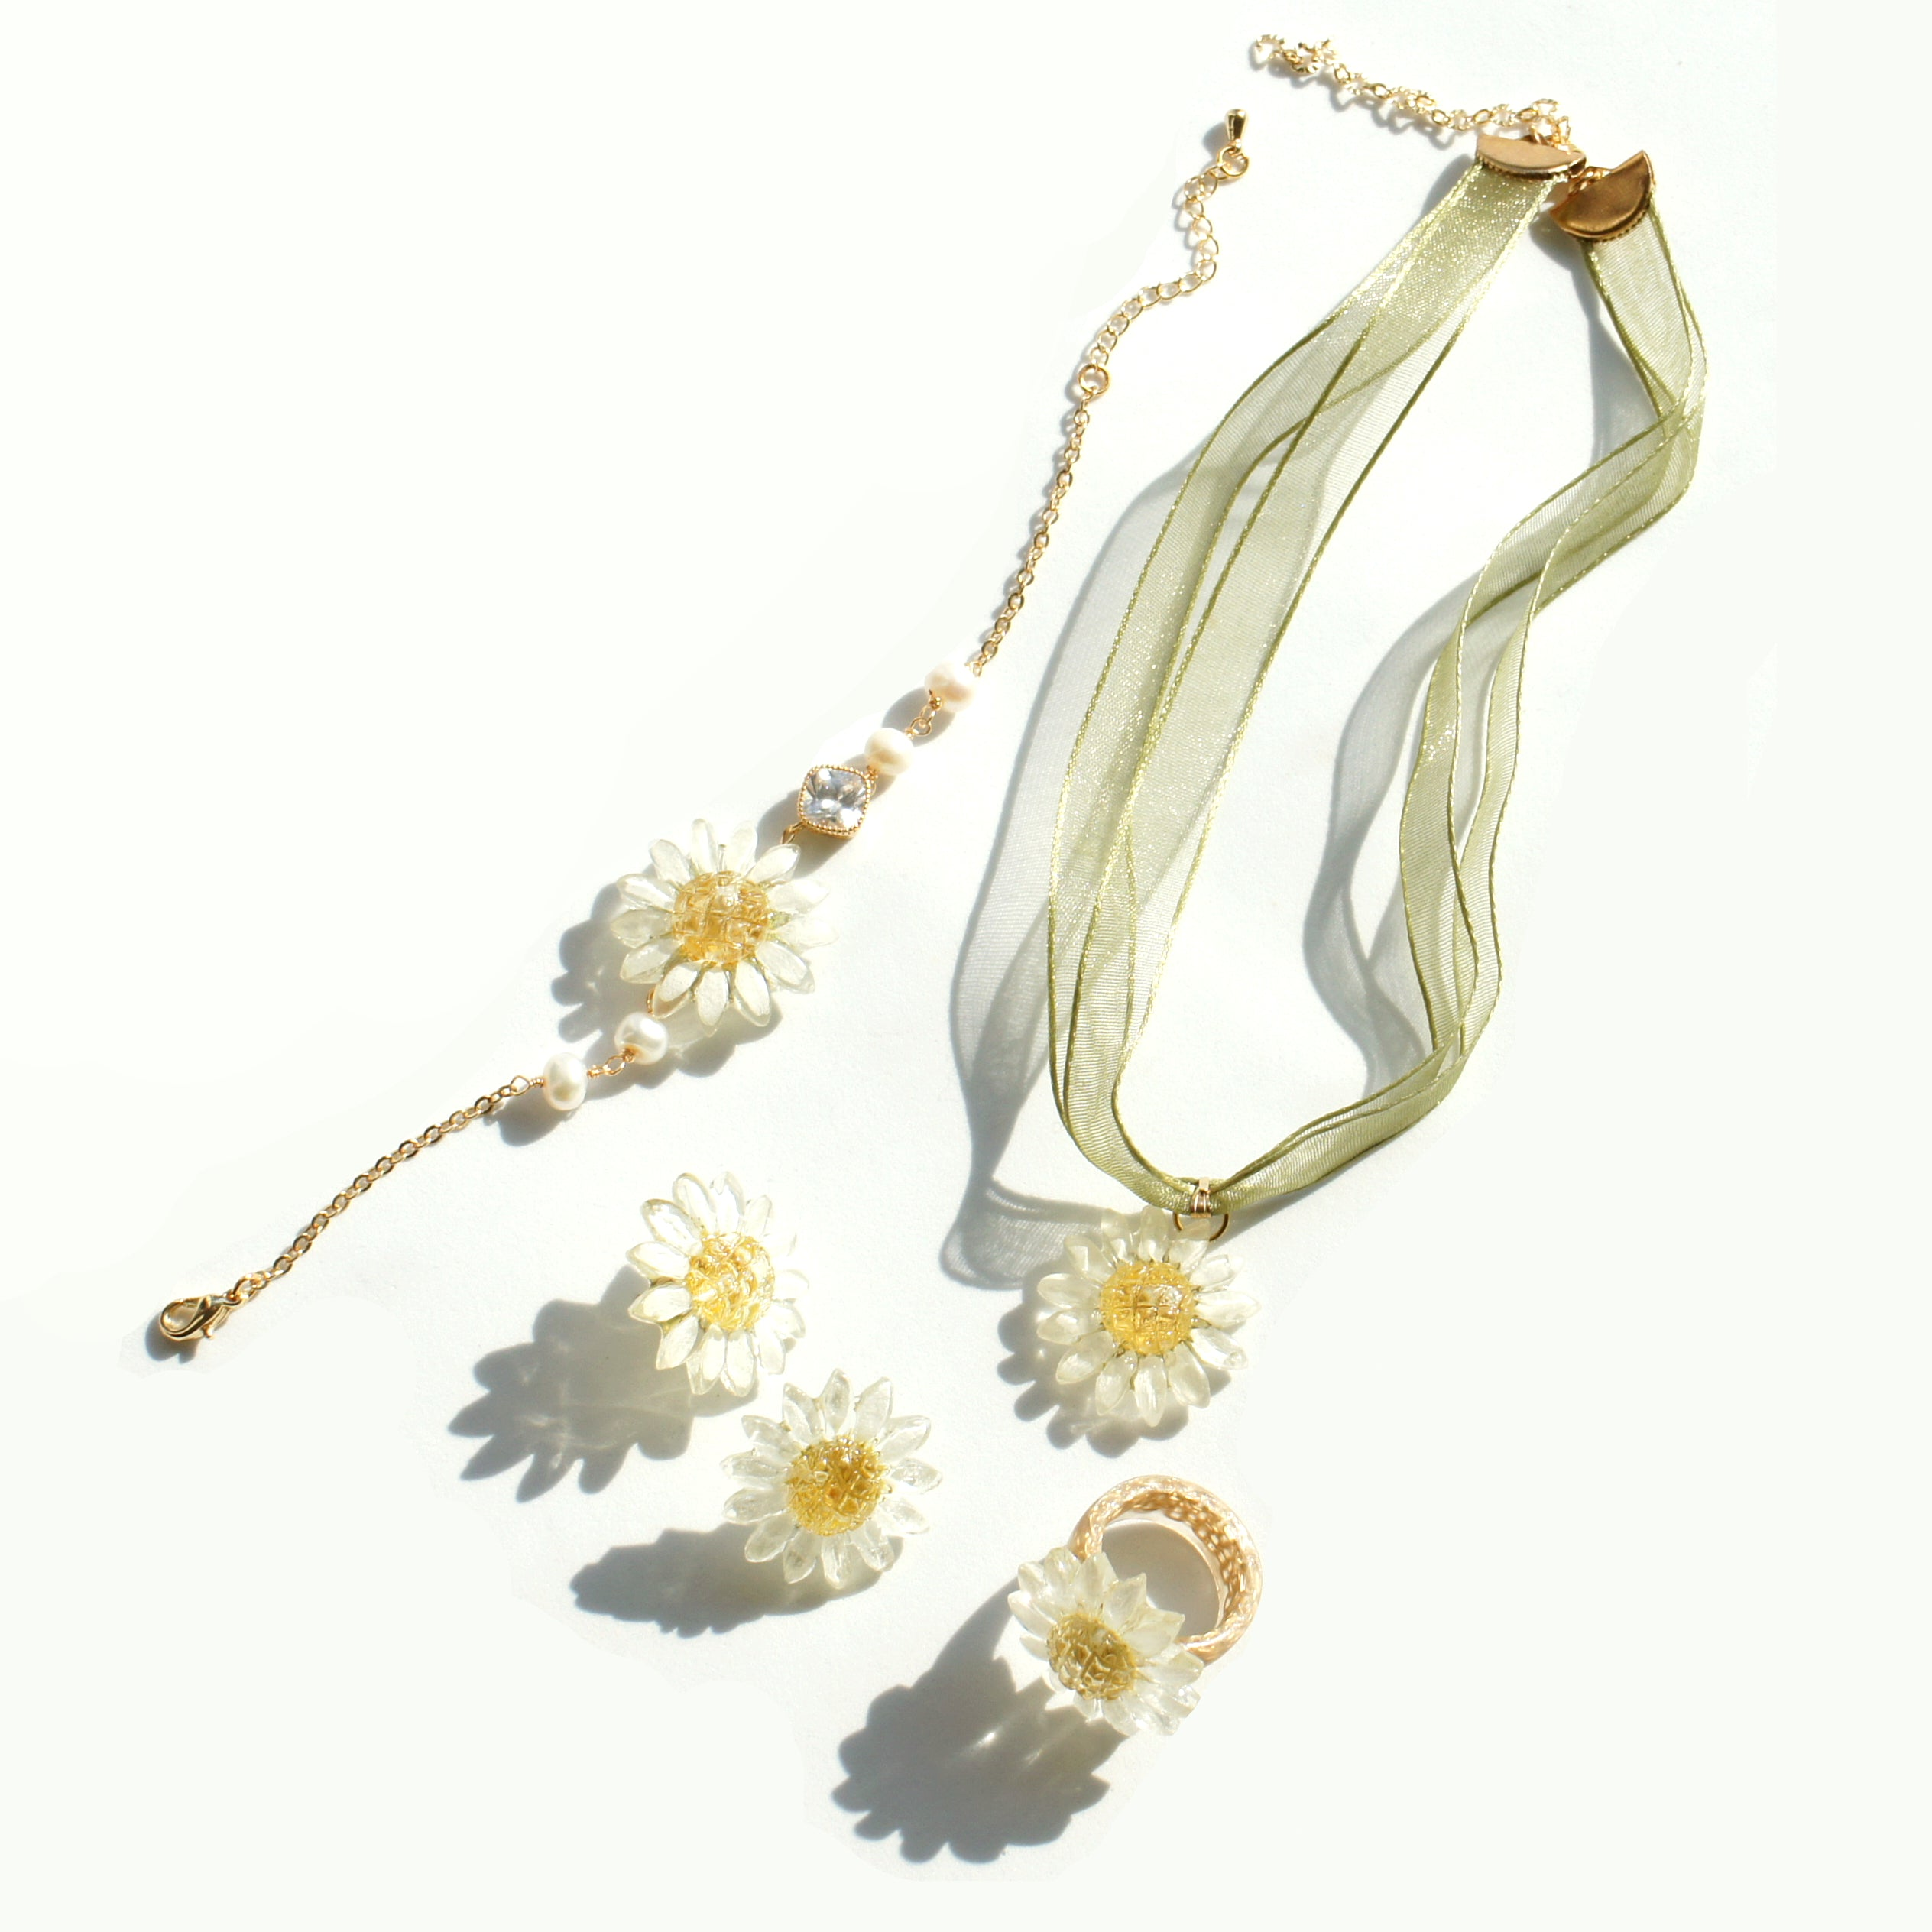 *REAL FLOWER* Reborn White Daisy Bracelet, Freshwater Pearls & Gold-plated